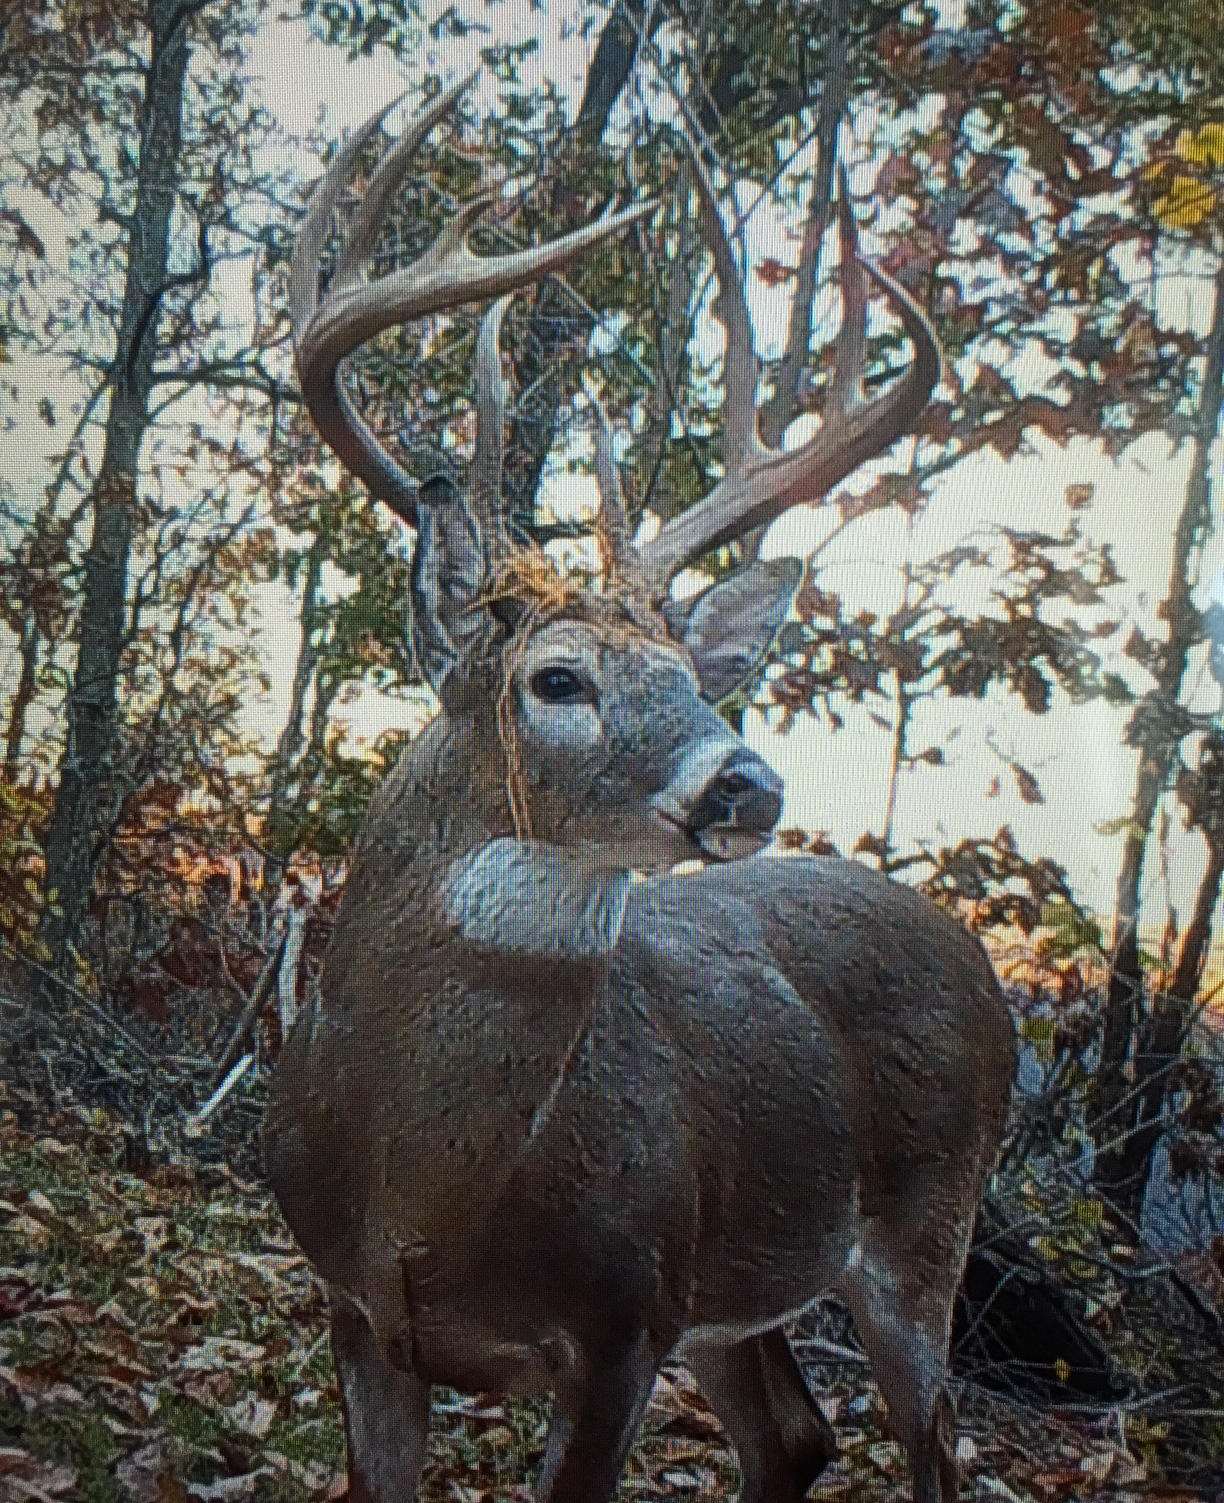 Lewis KY Trail Cam 8